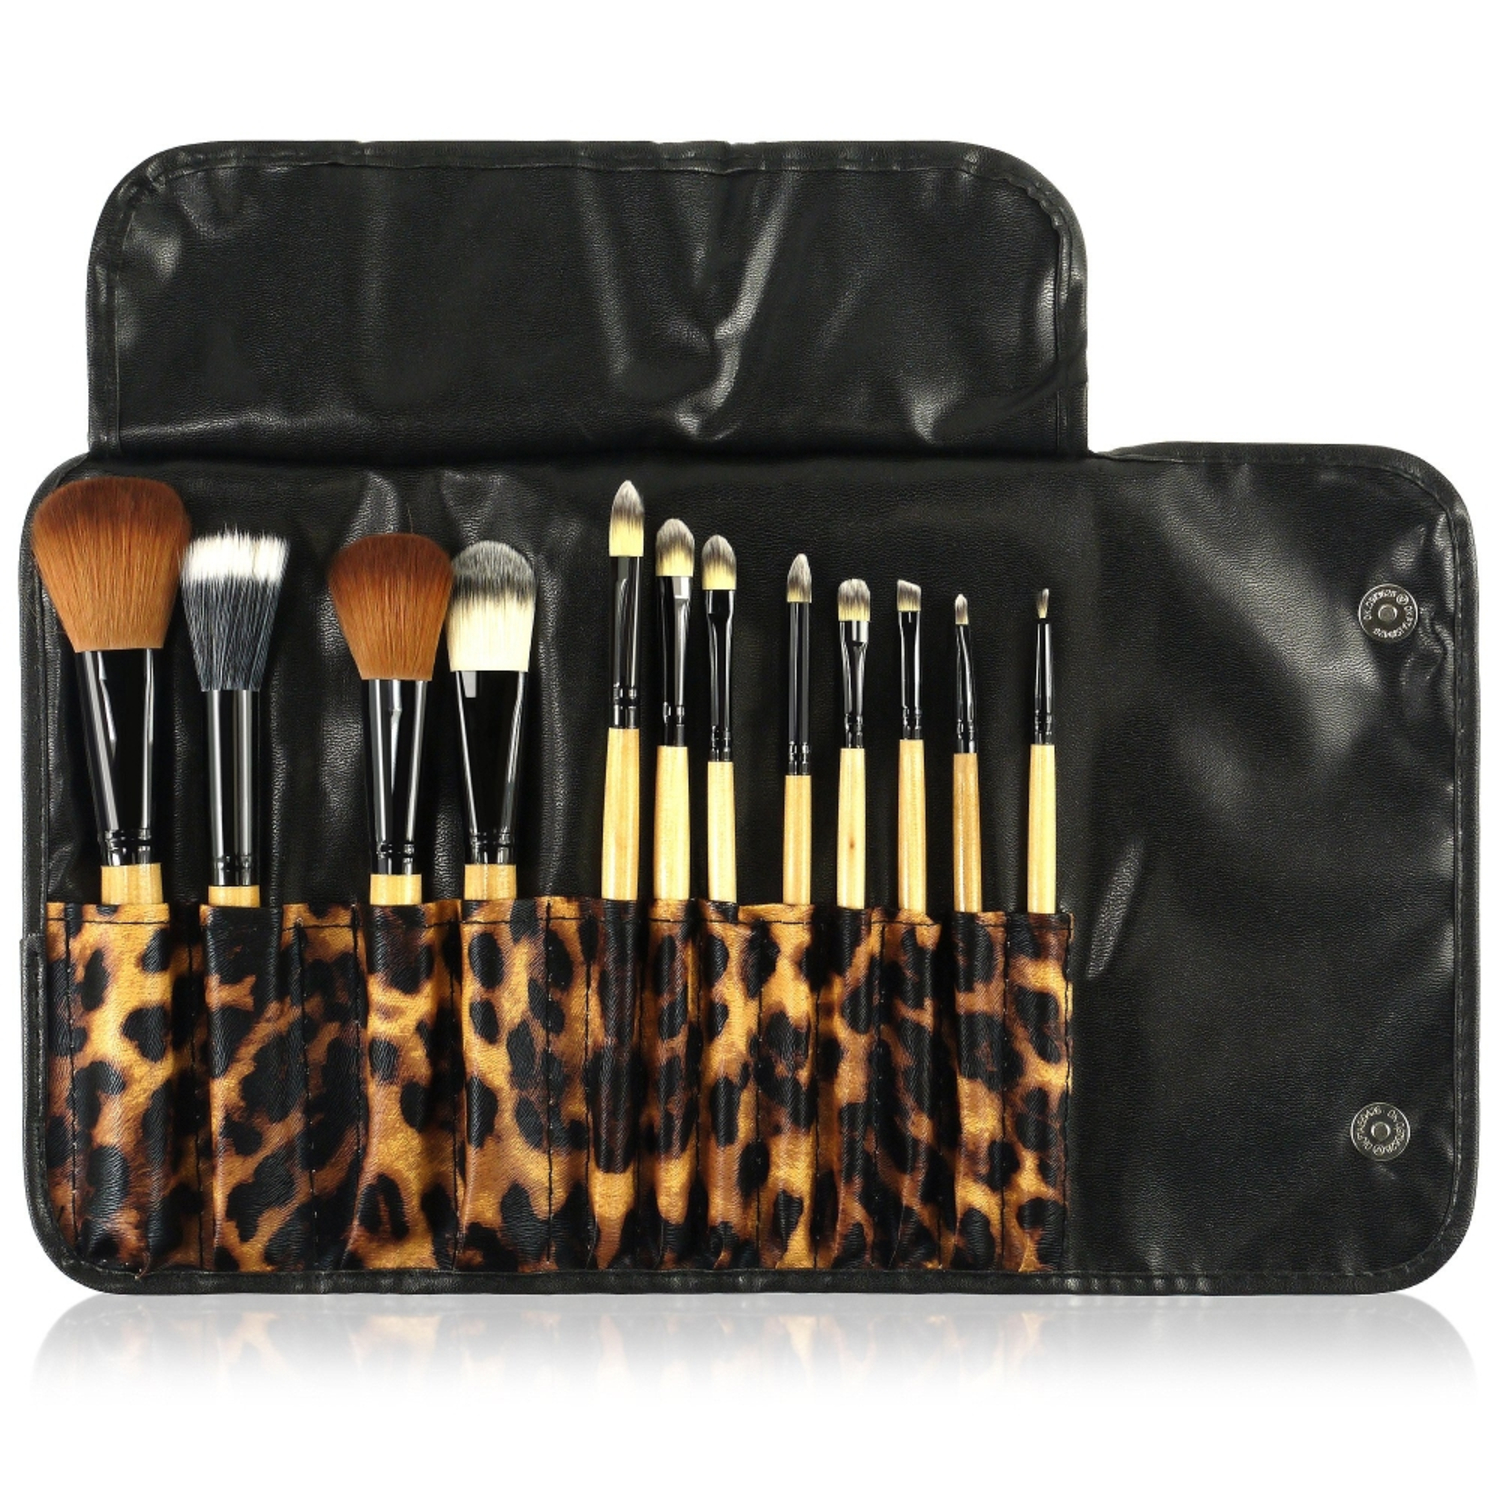 Zodaca 12 pcs Makeup Brushes Kit Set Powder Foundation Eye shadow Eyeliner Lip with Leopard Cosmetic Pouch Bag